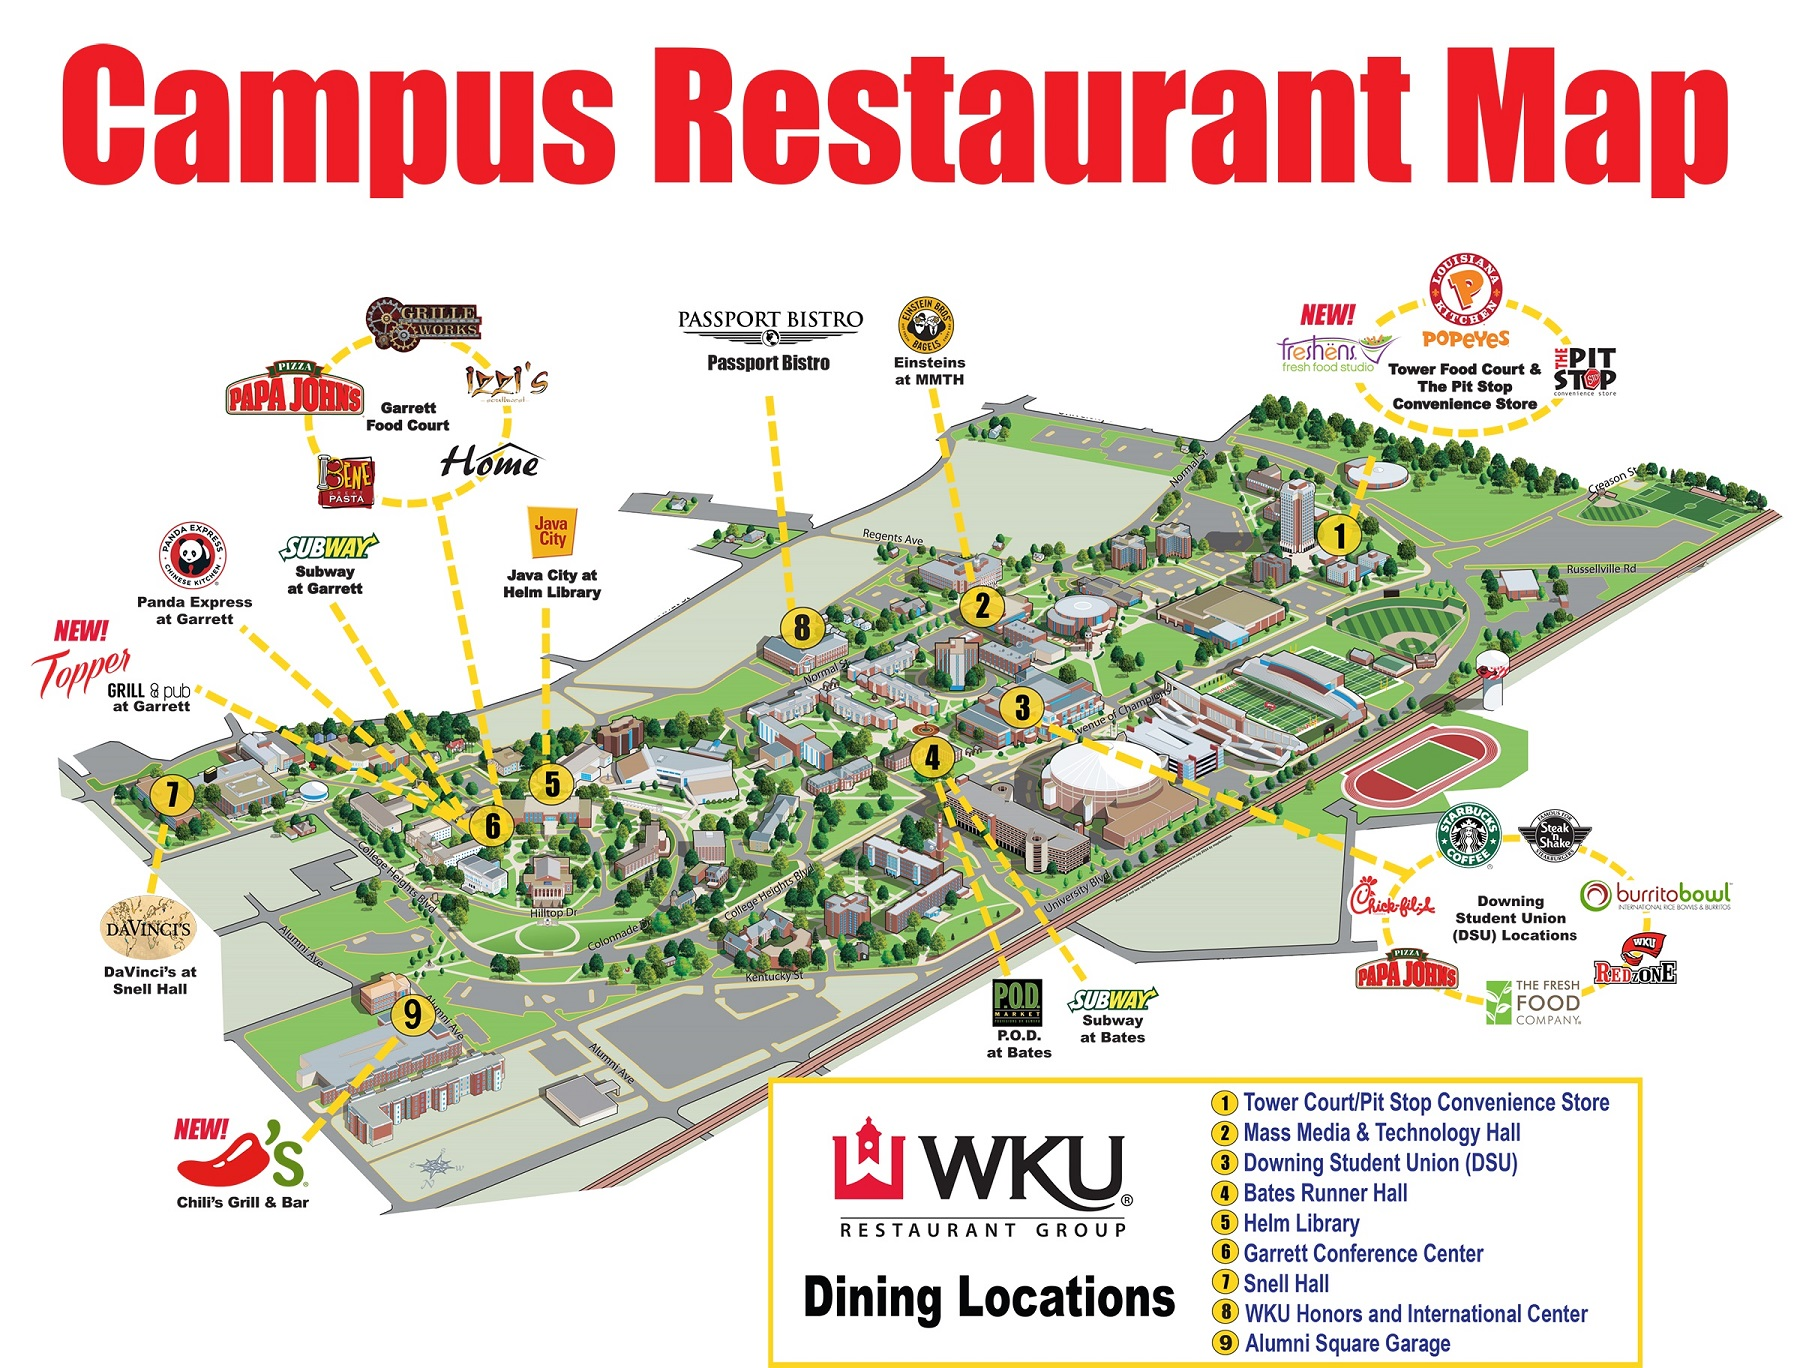 Campus Restaurant Map